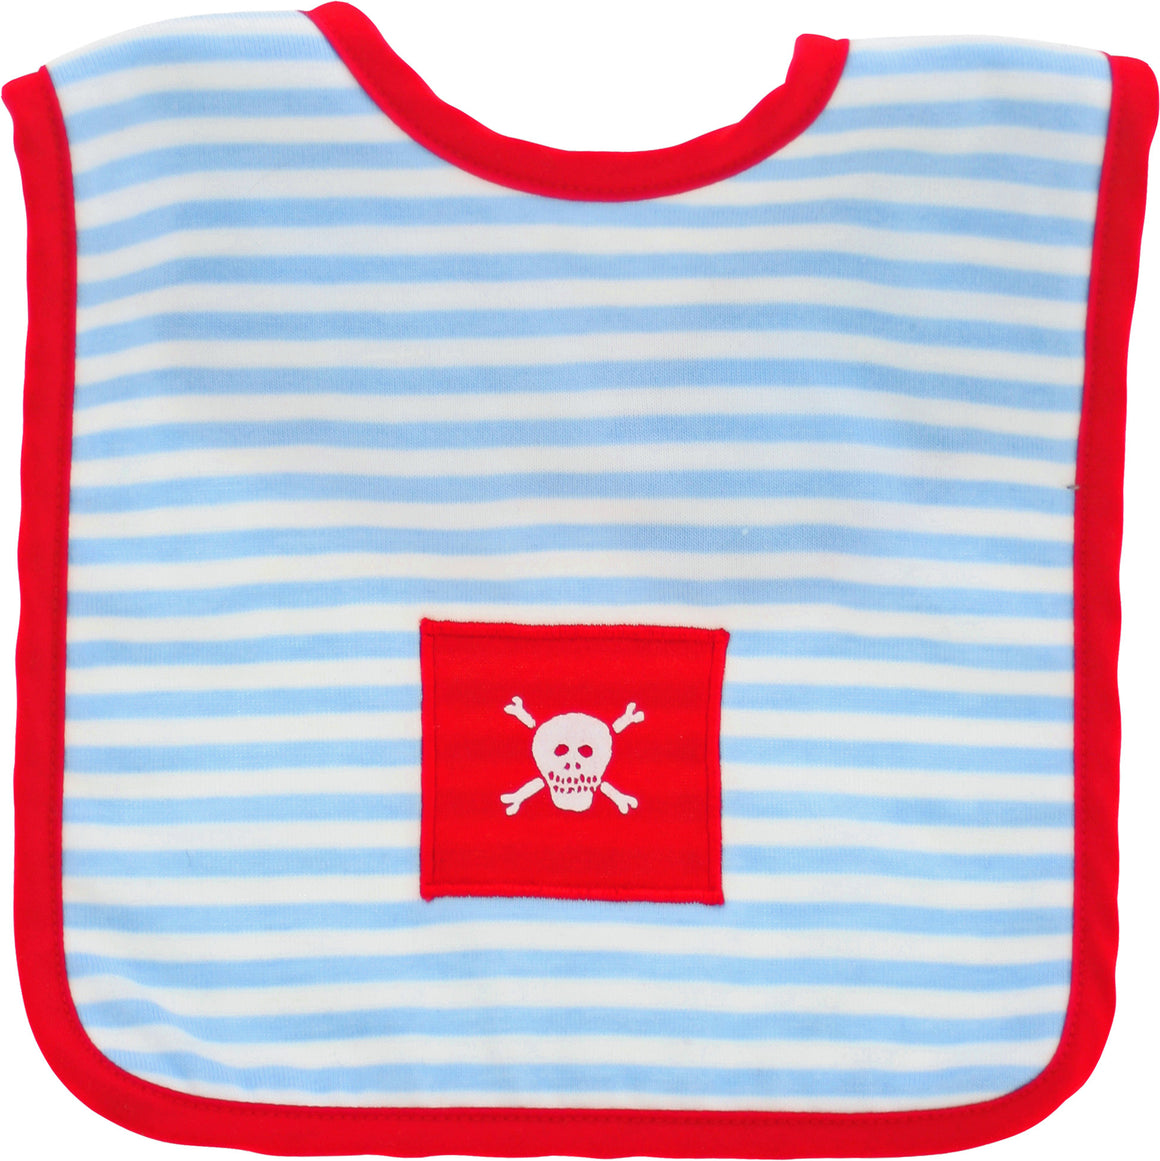 Alimrose Designs - Pale Blue Pirate Baby Bib | Bib & Smocks | Bon Bon Tresor